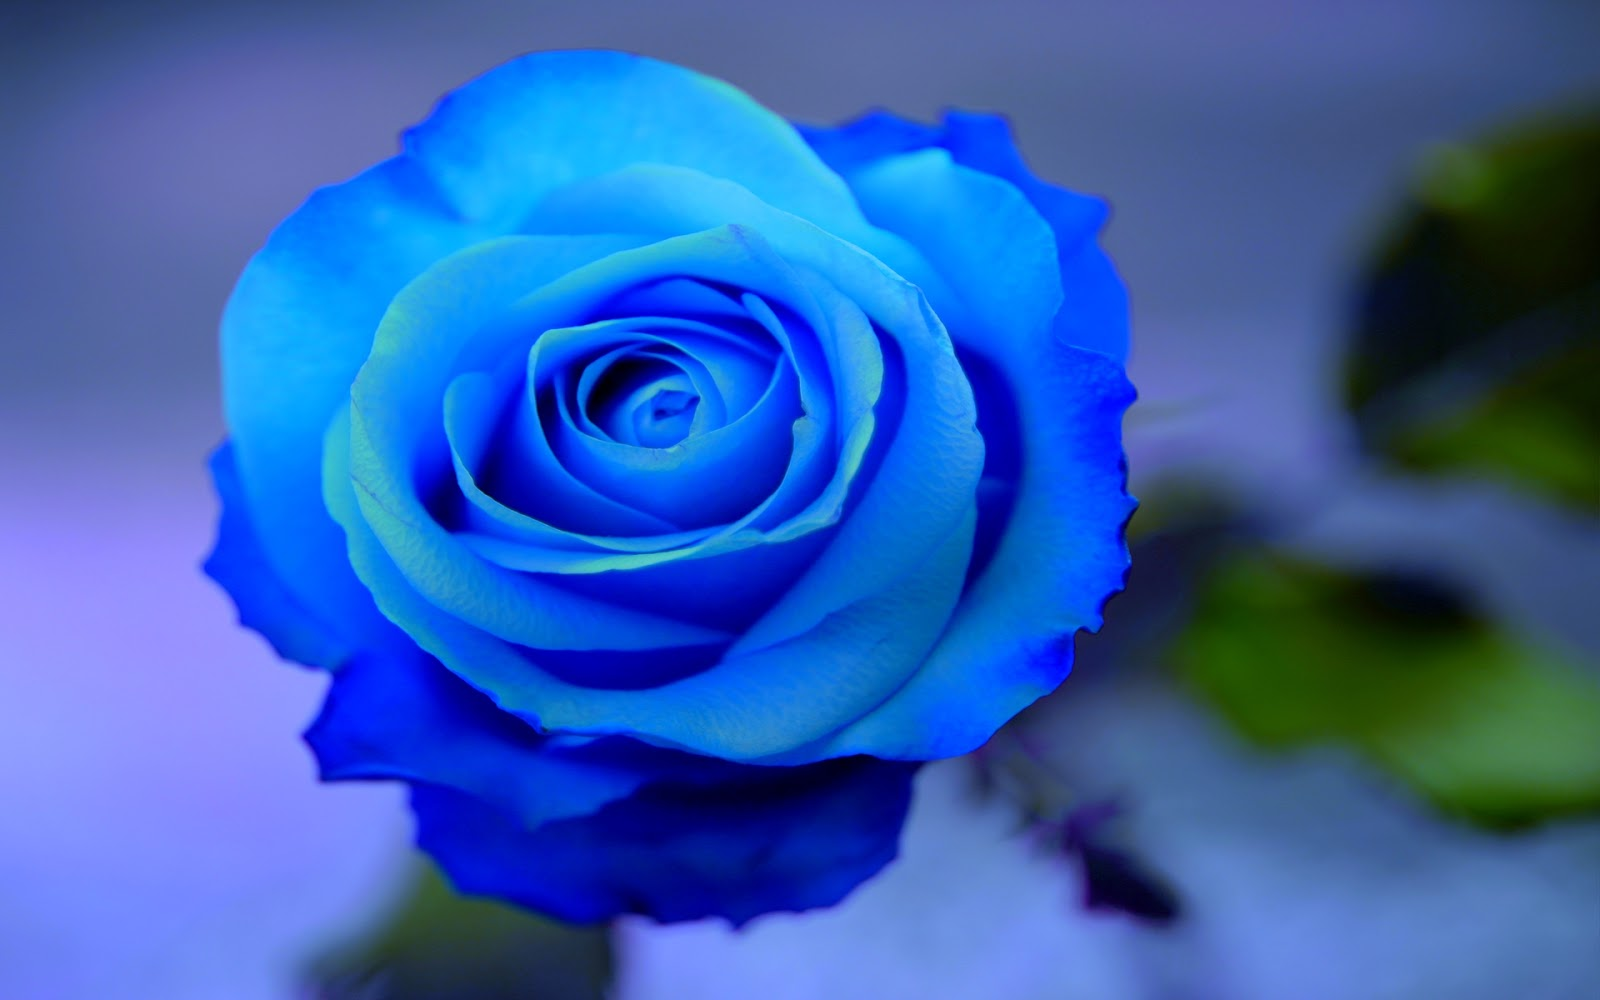 Blue Rose Flowers - Flower HD Wallpapers, Images, PIctures ...